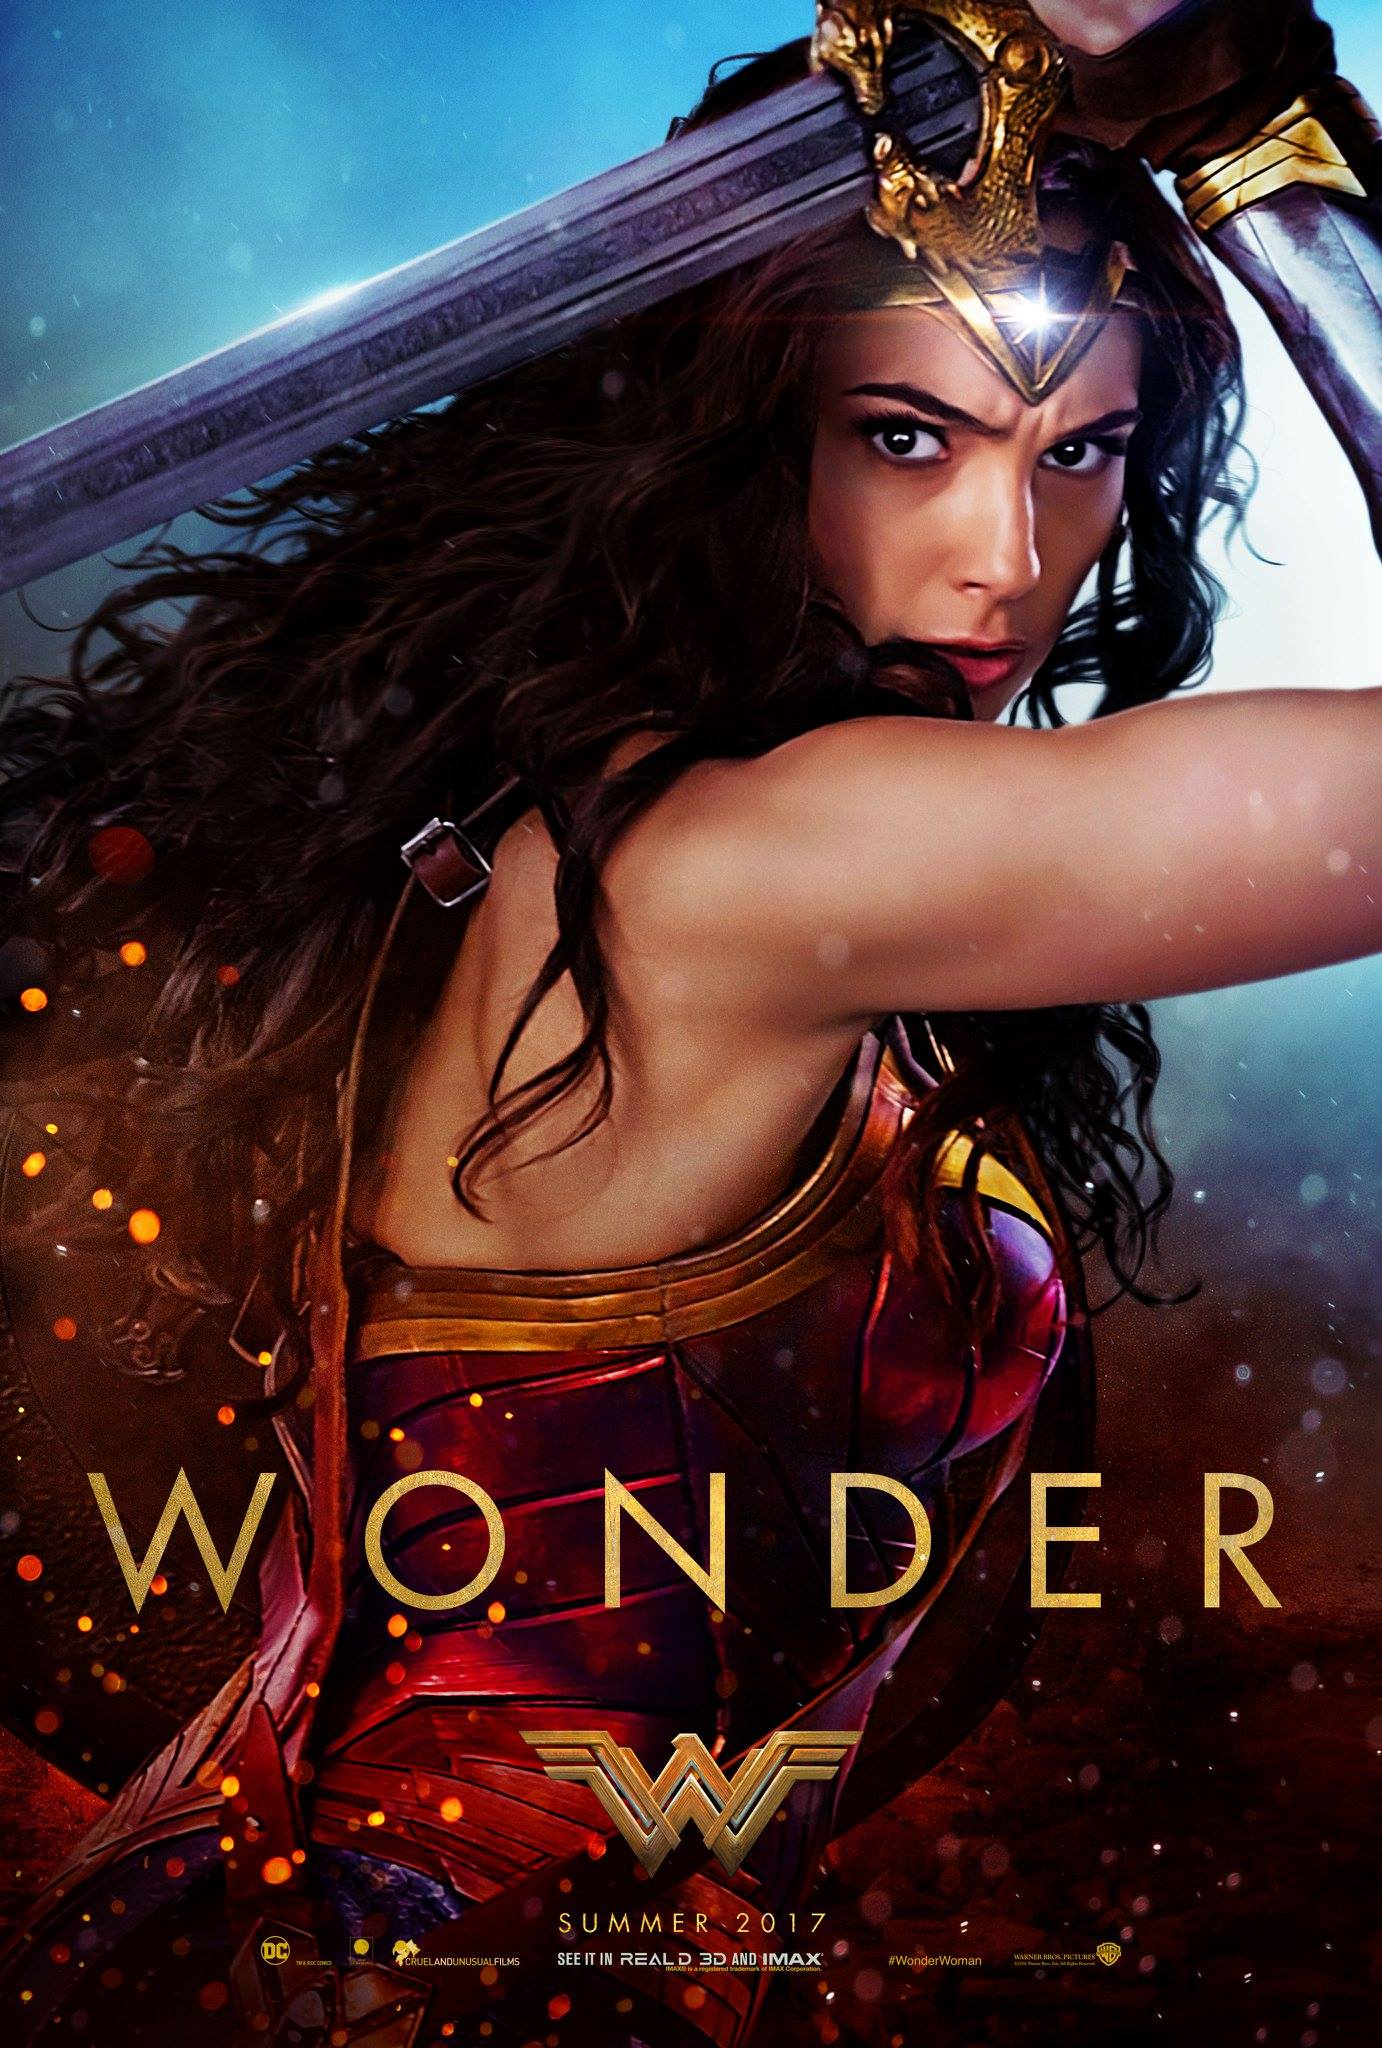 szmk_wonder_woman_movie_poster_1.jpg